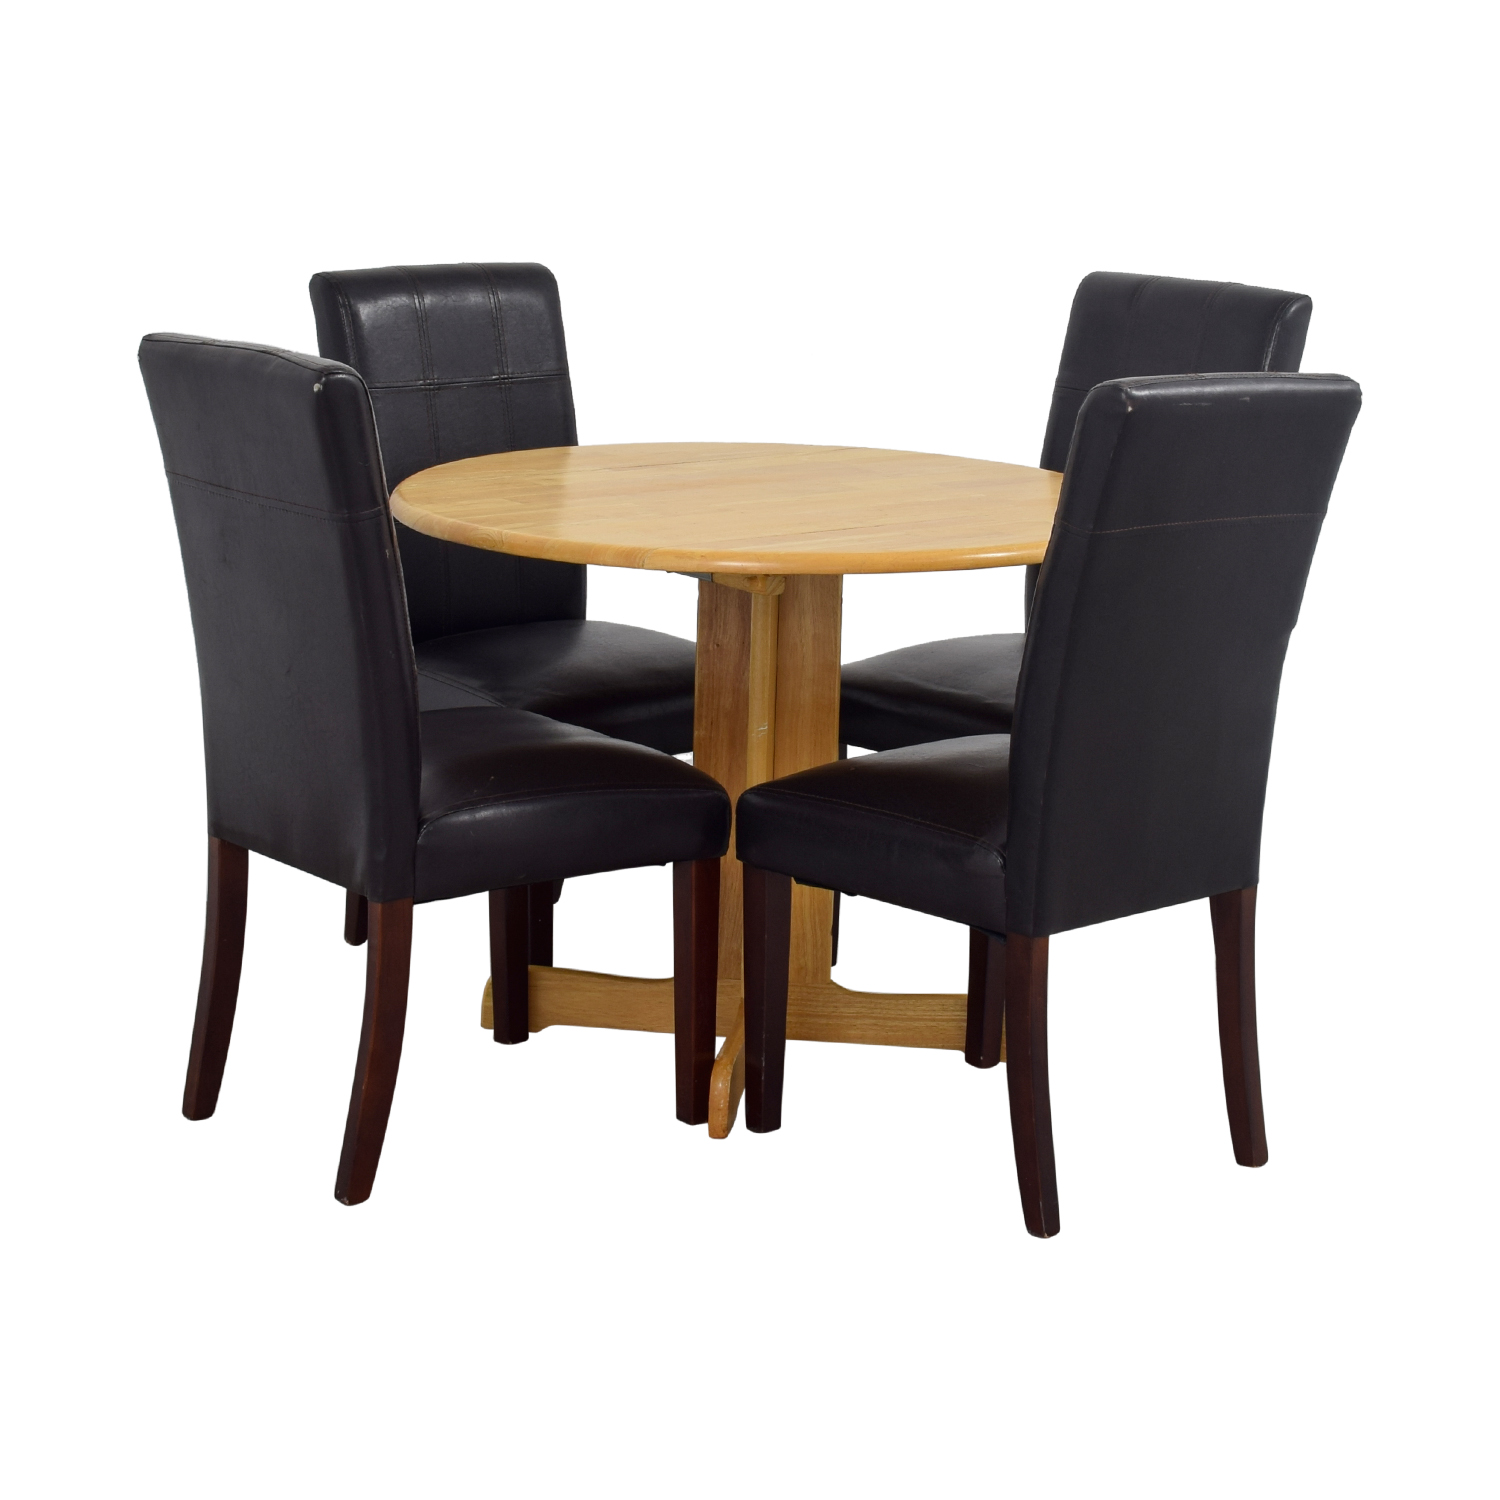 Raymour & Flannigan Rouch Butcher Block Table with Brown Leather Chairs / Dining Sets